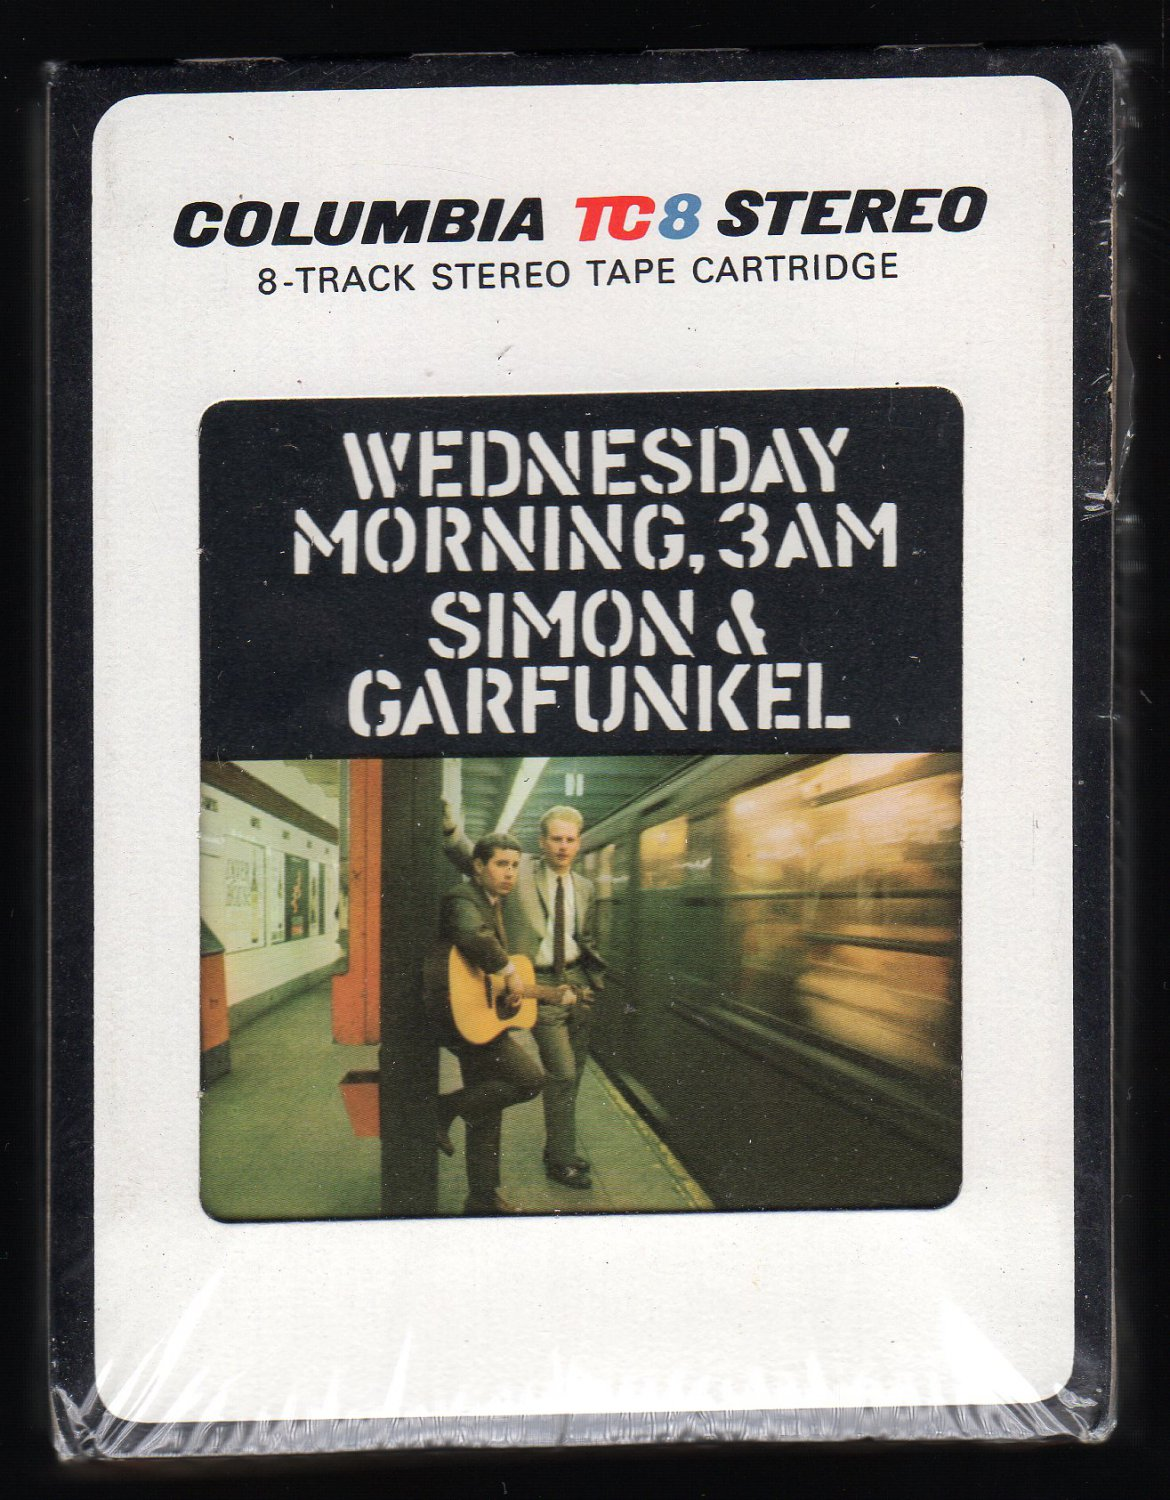 Simon & Garfunkel - Wednesday Morning 3 A.M. 1964 Debut CBS Sealed Re-issue A27 8-TRACK TAPE